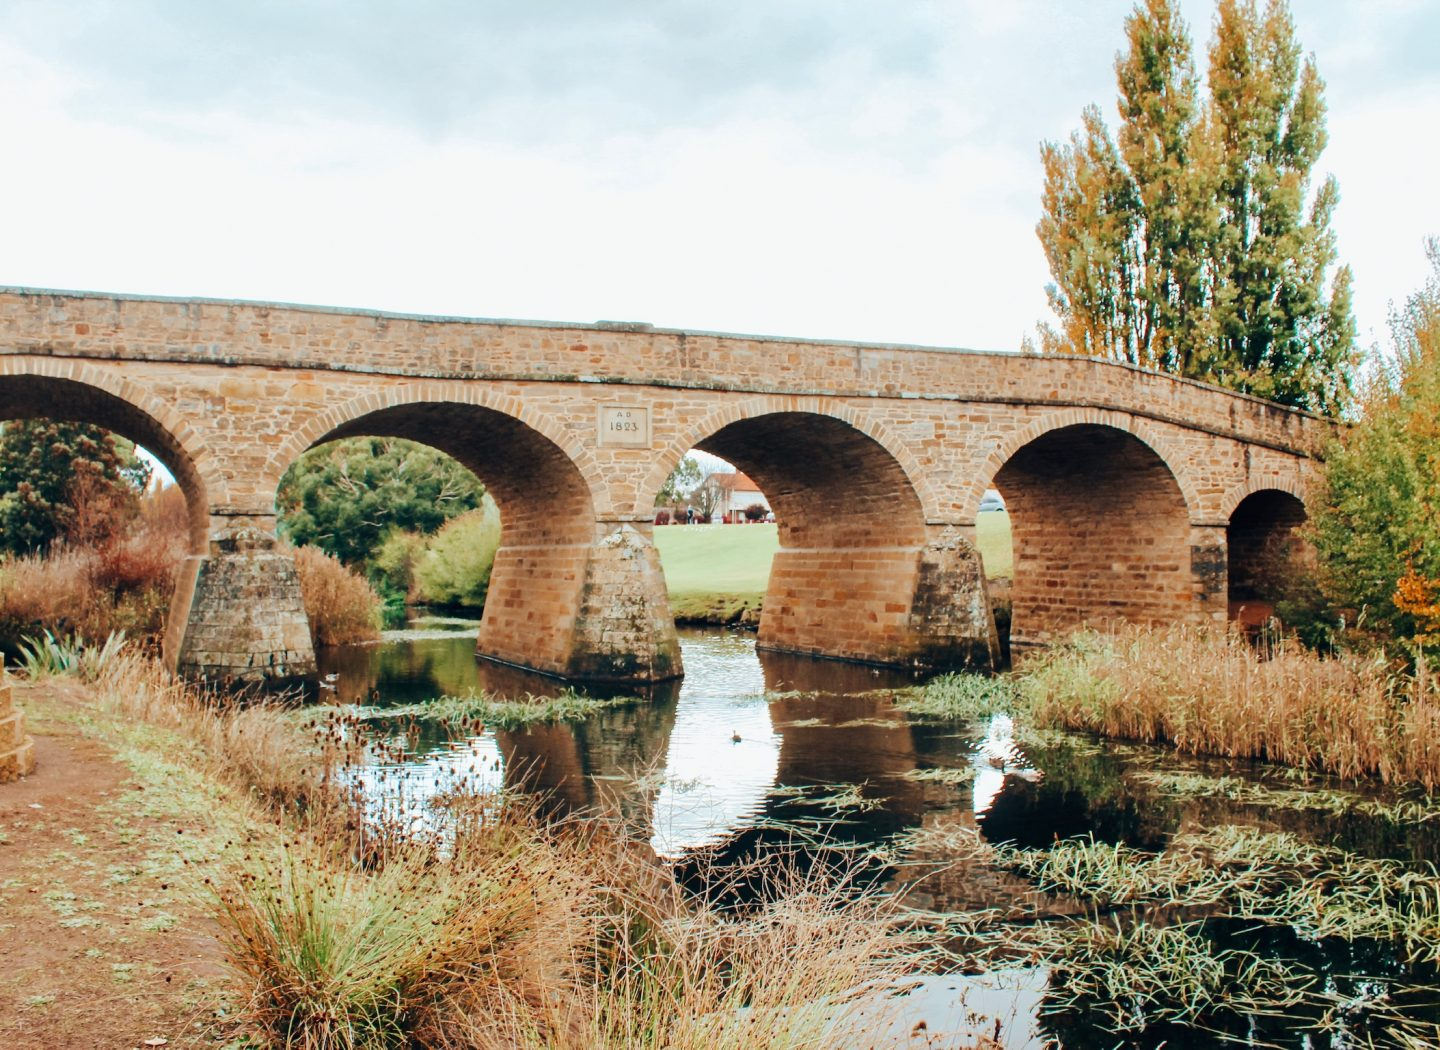 The oldest bridge in Australia in Richmond on our Tasmania road trip!